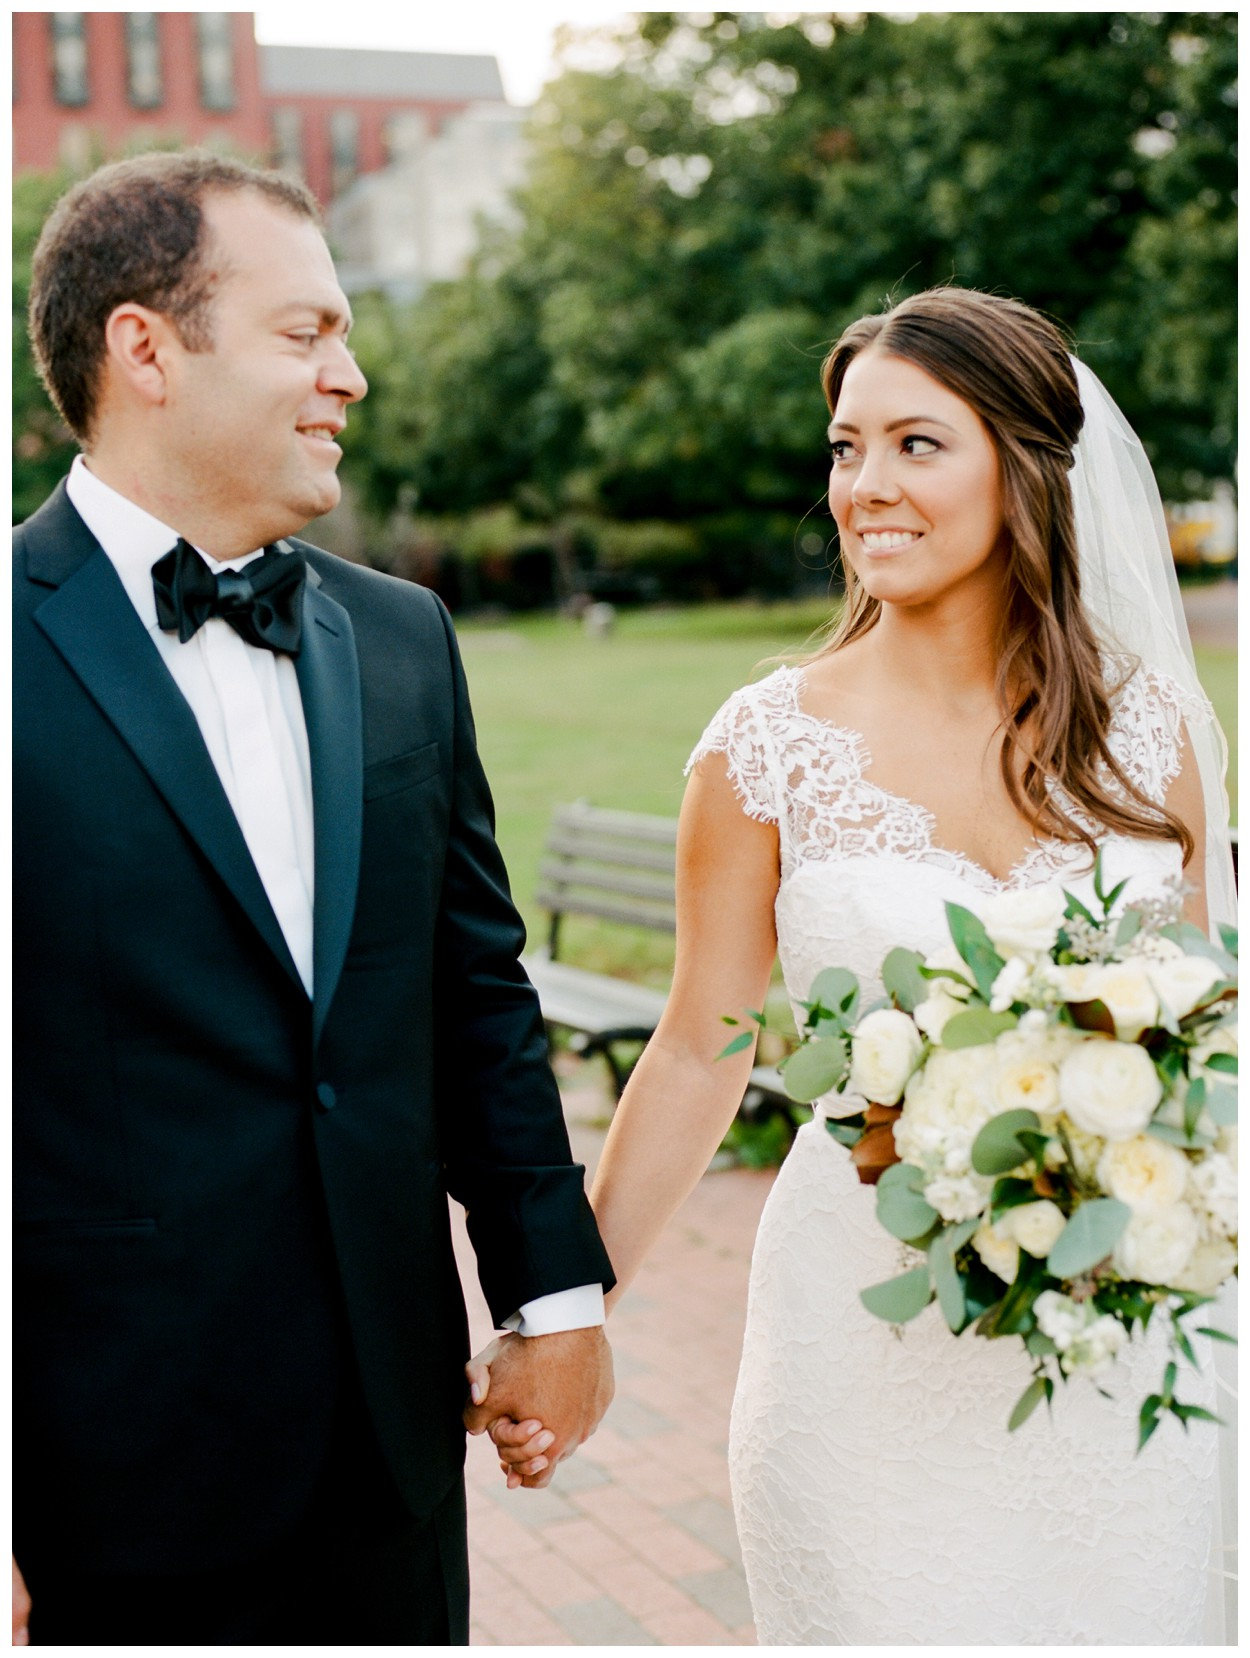 Fall Wedding at the Mayflower Hotel in Washington DC by fine art wedding photographer Lissa Ryan Photography